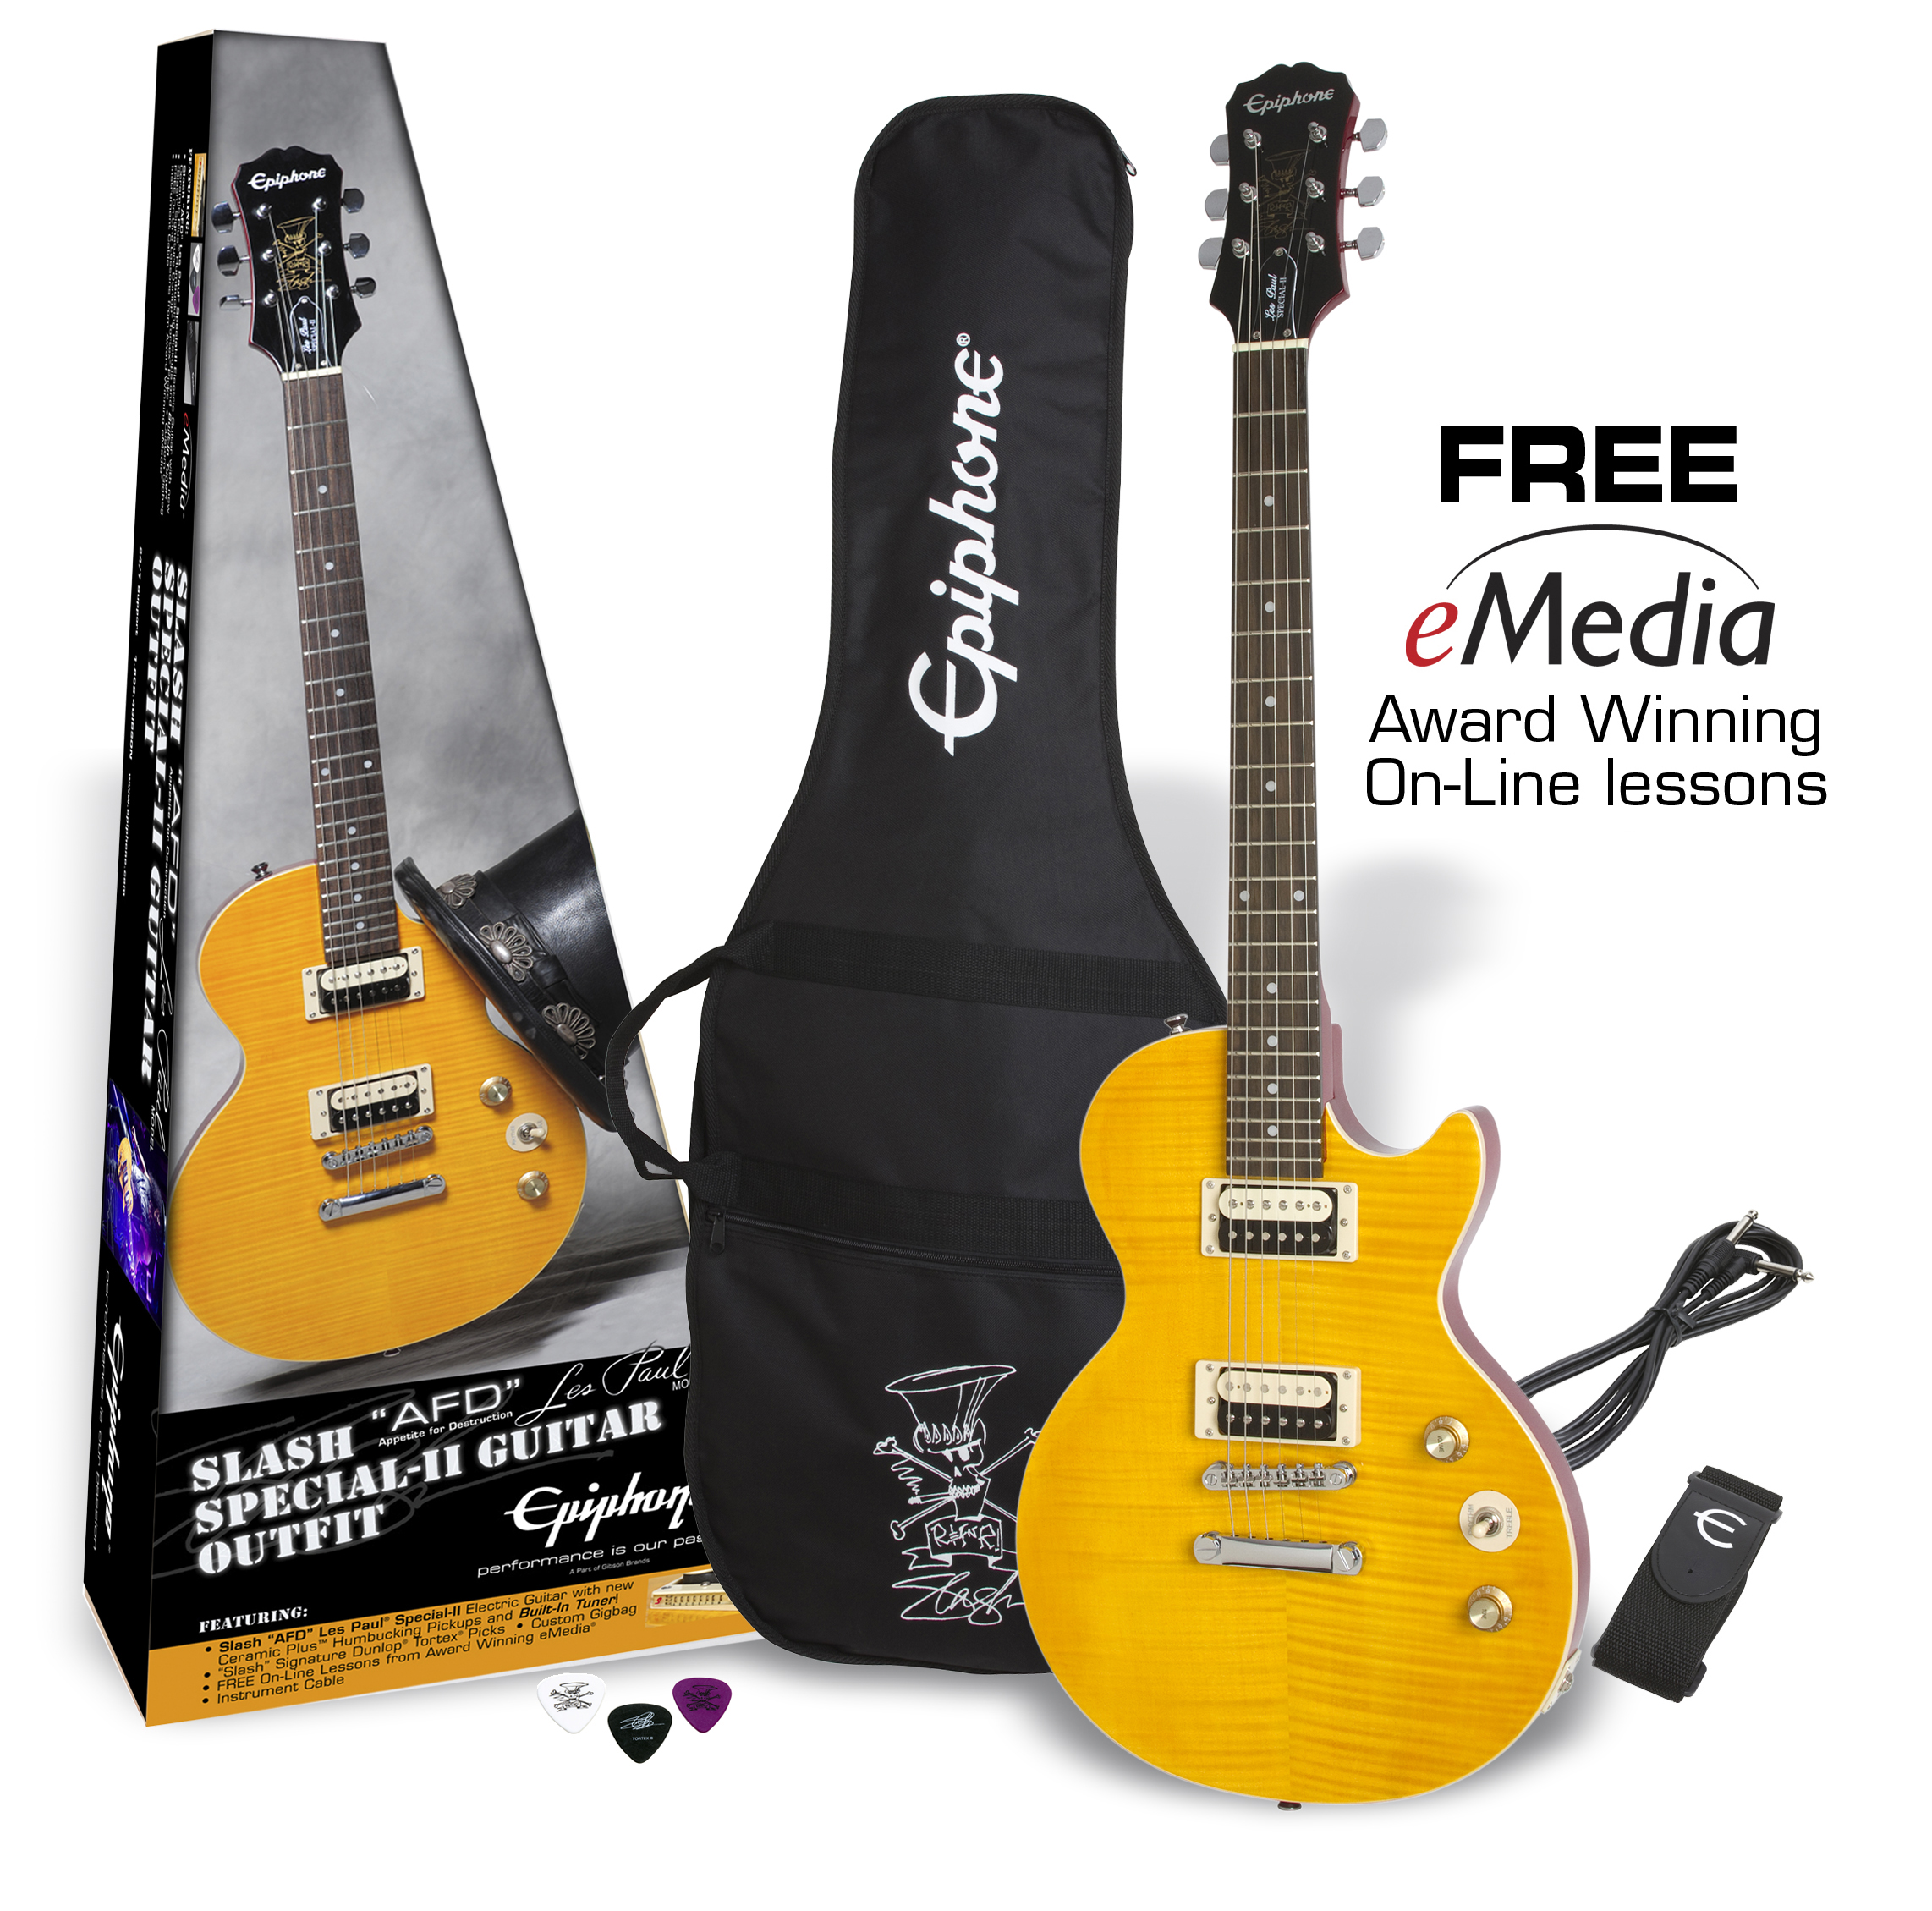 "Slash ""AFD"" LP Special-II Guitar Outfit"